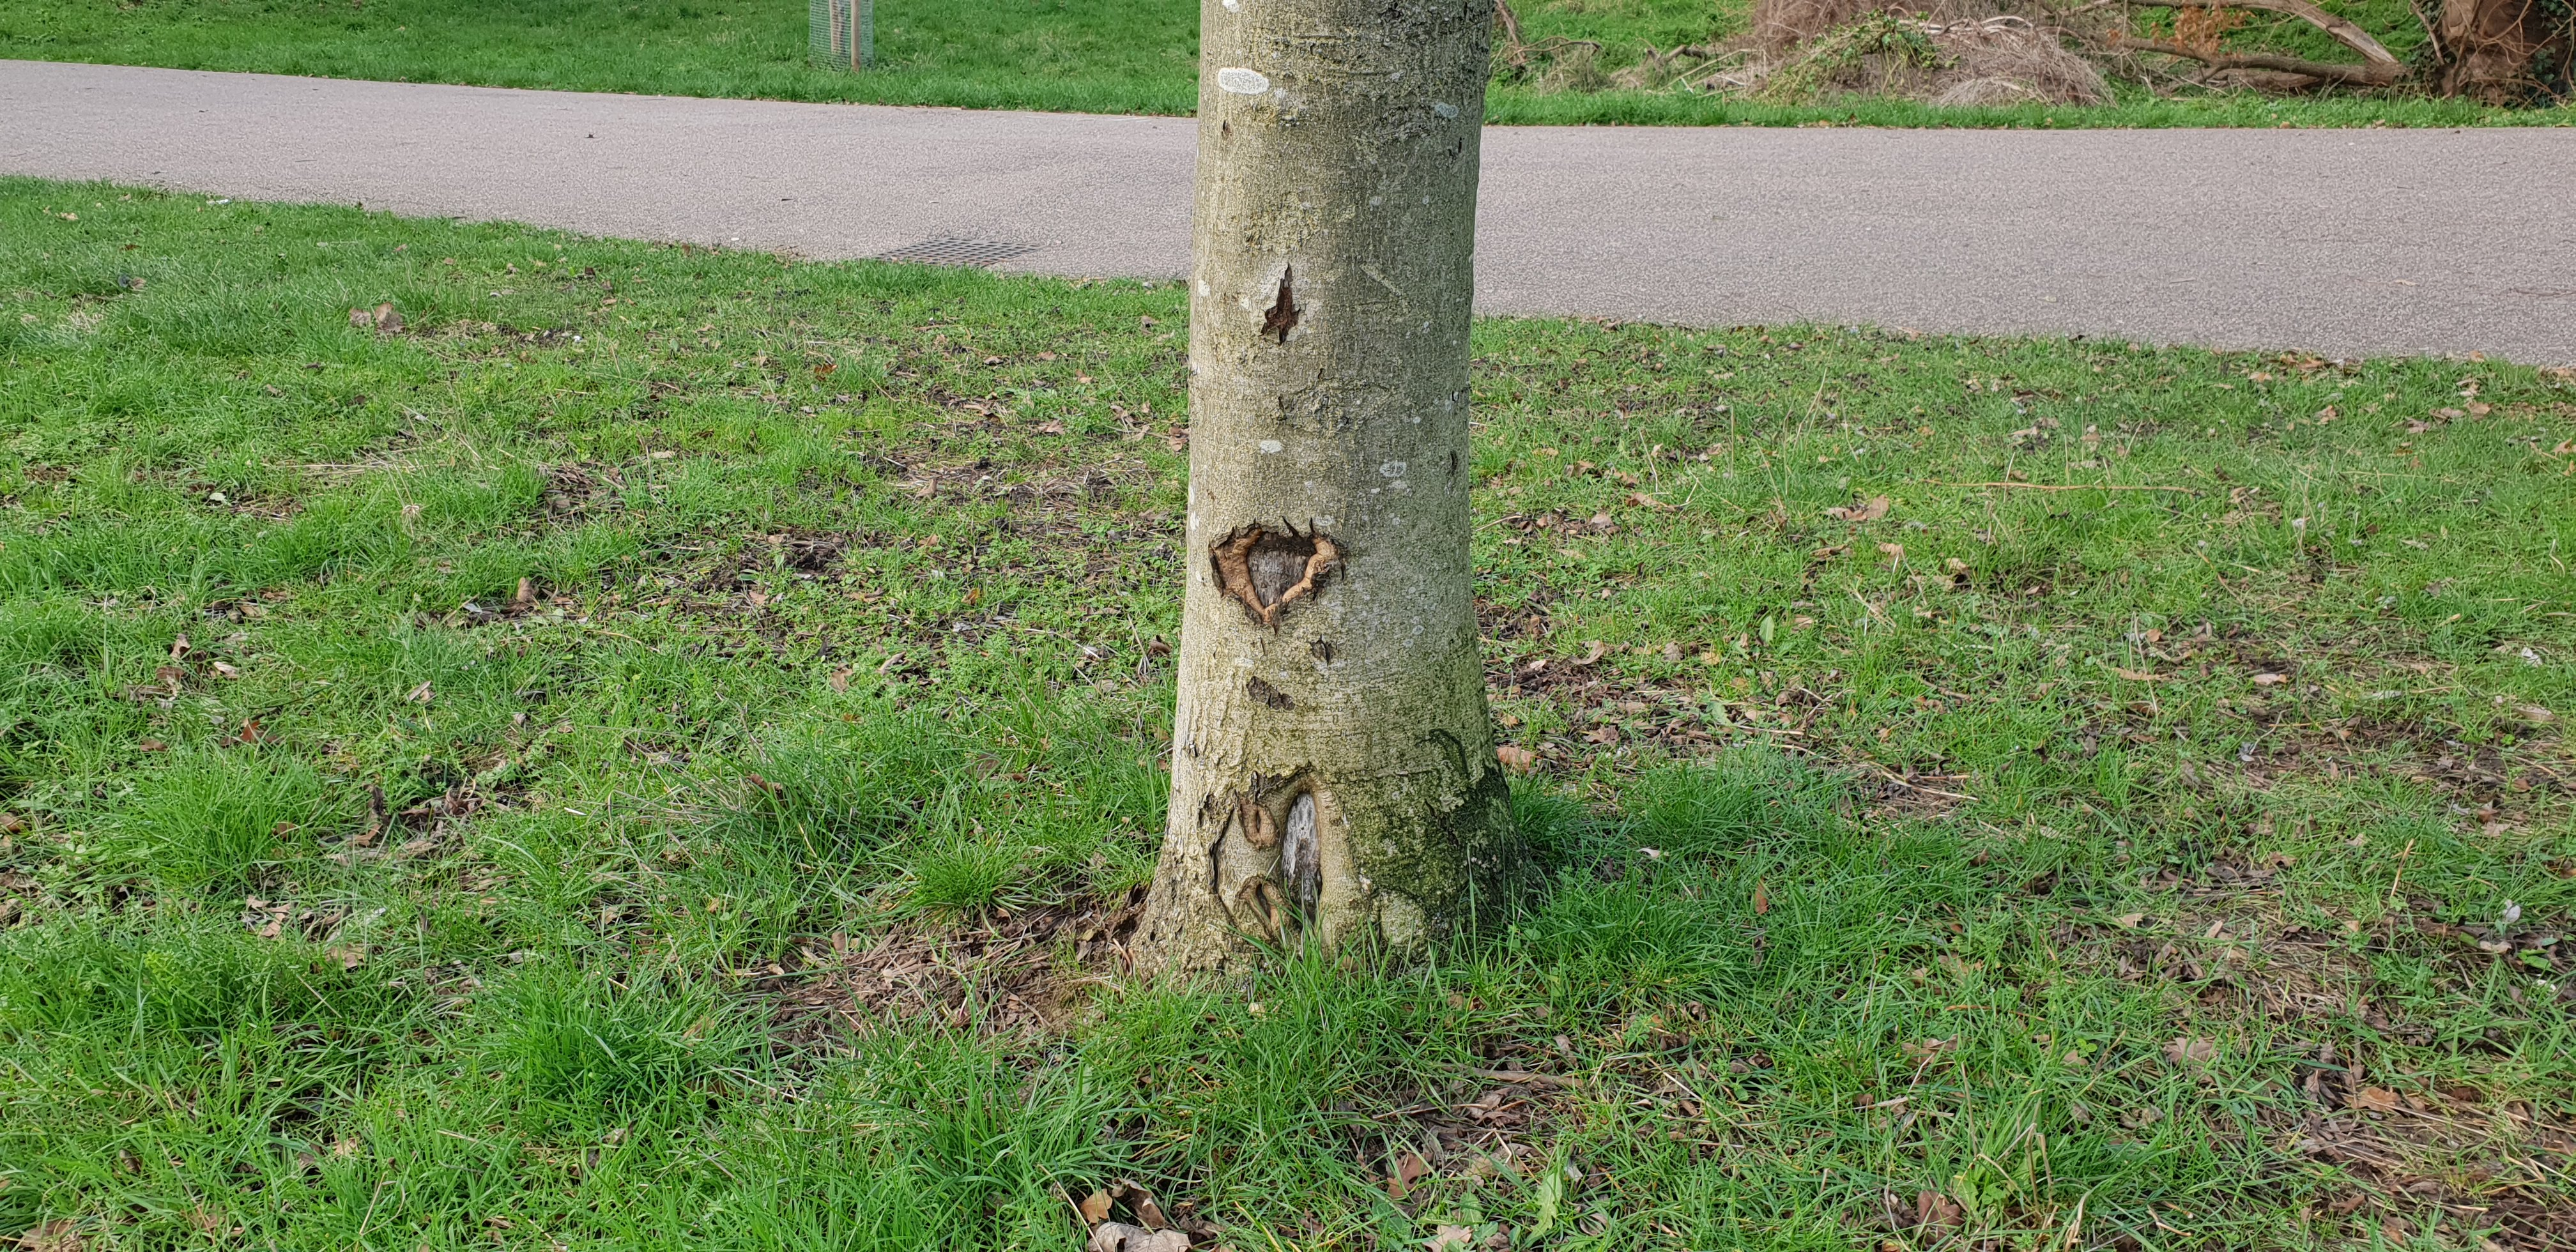 Historic strimmer damage allowing fungal infection at base of ash tree at Mountsfield Park 2018